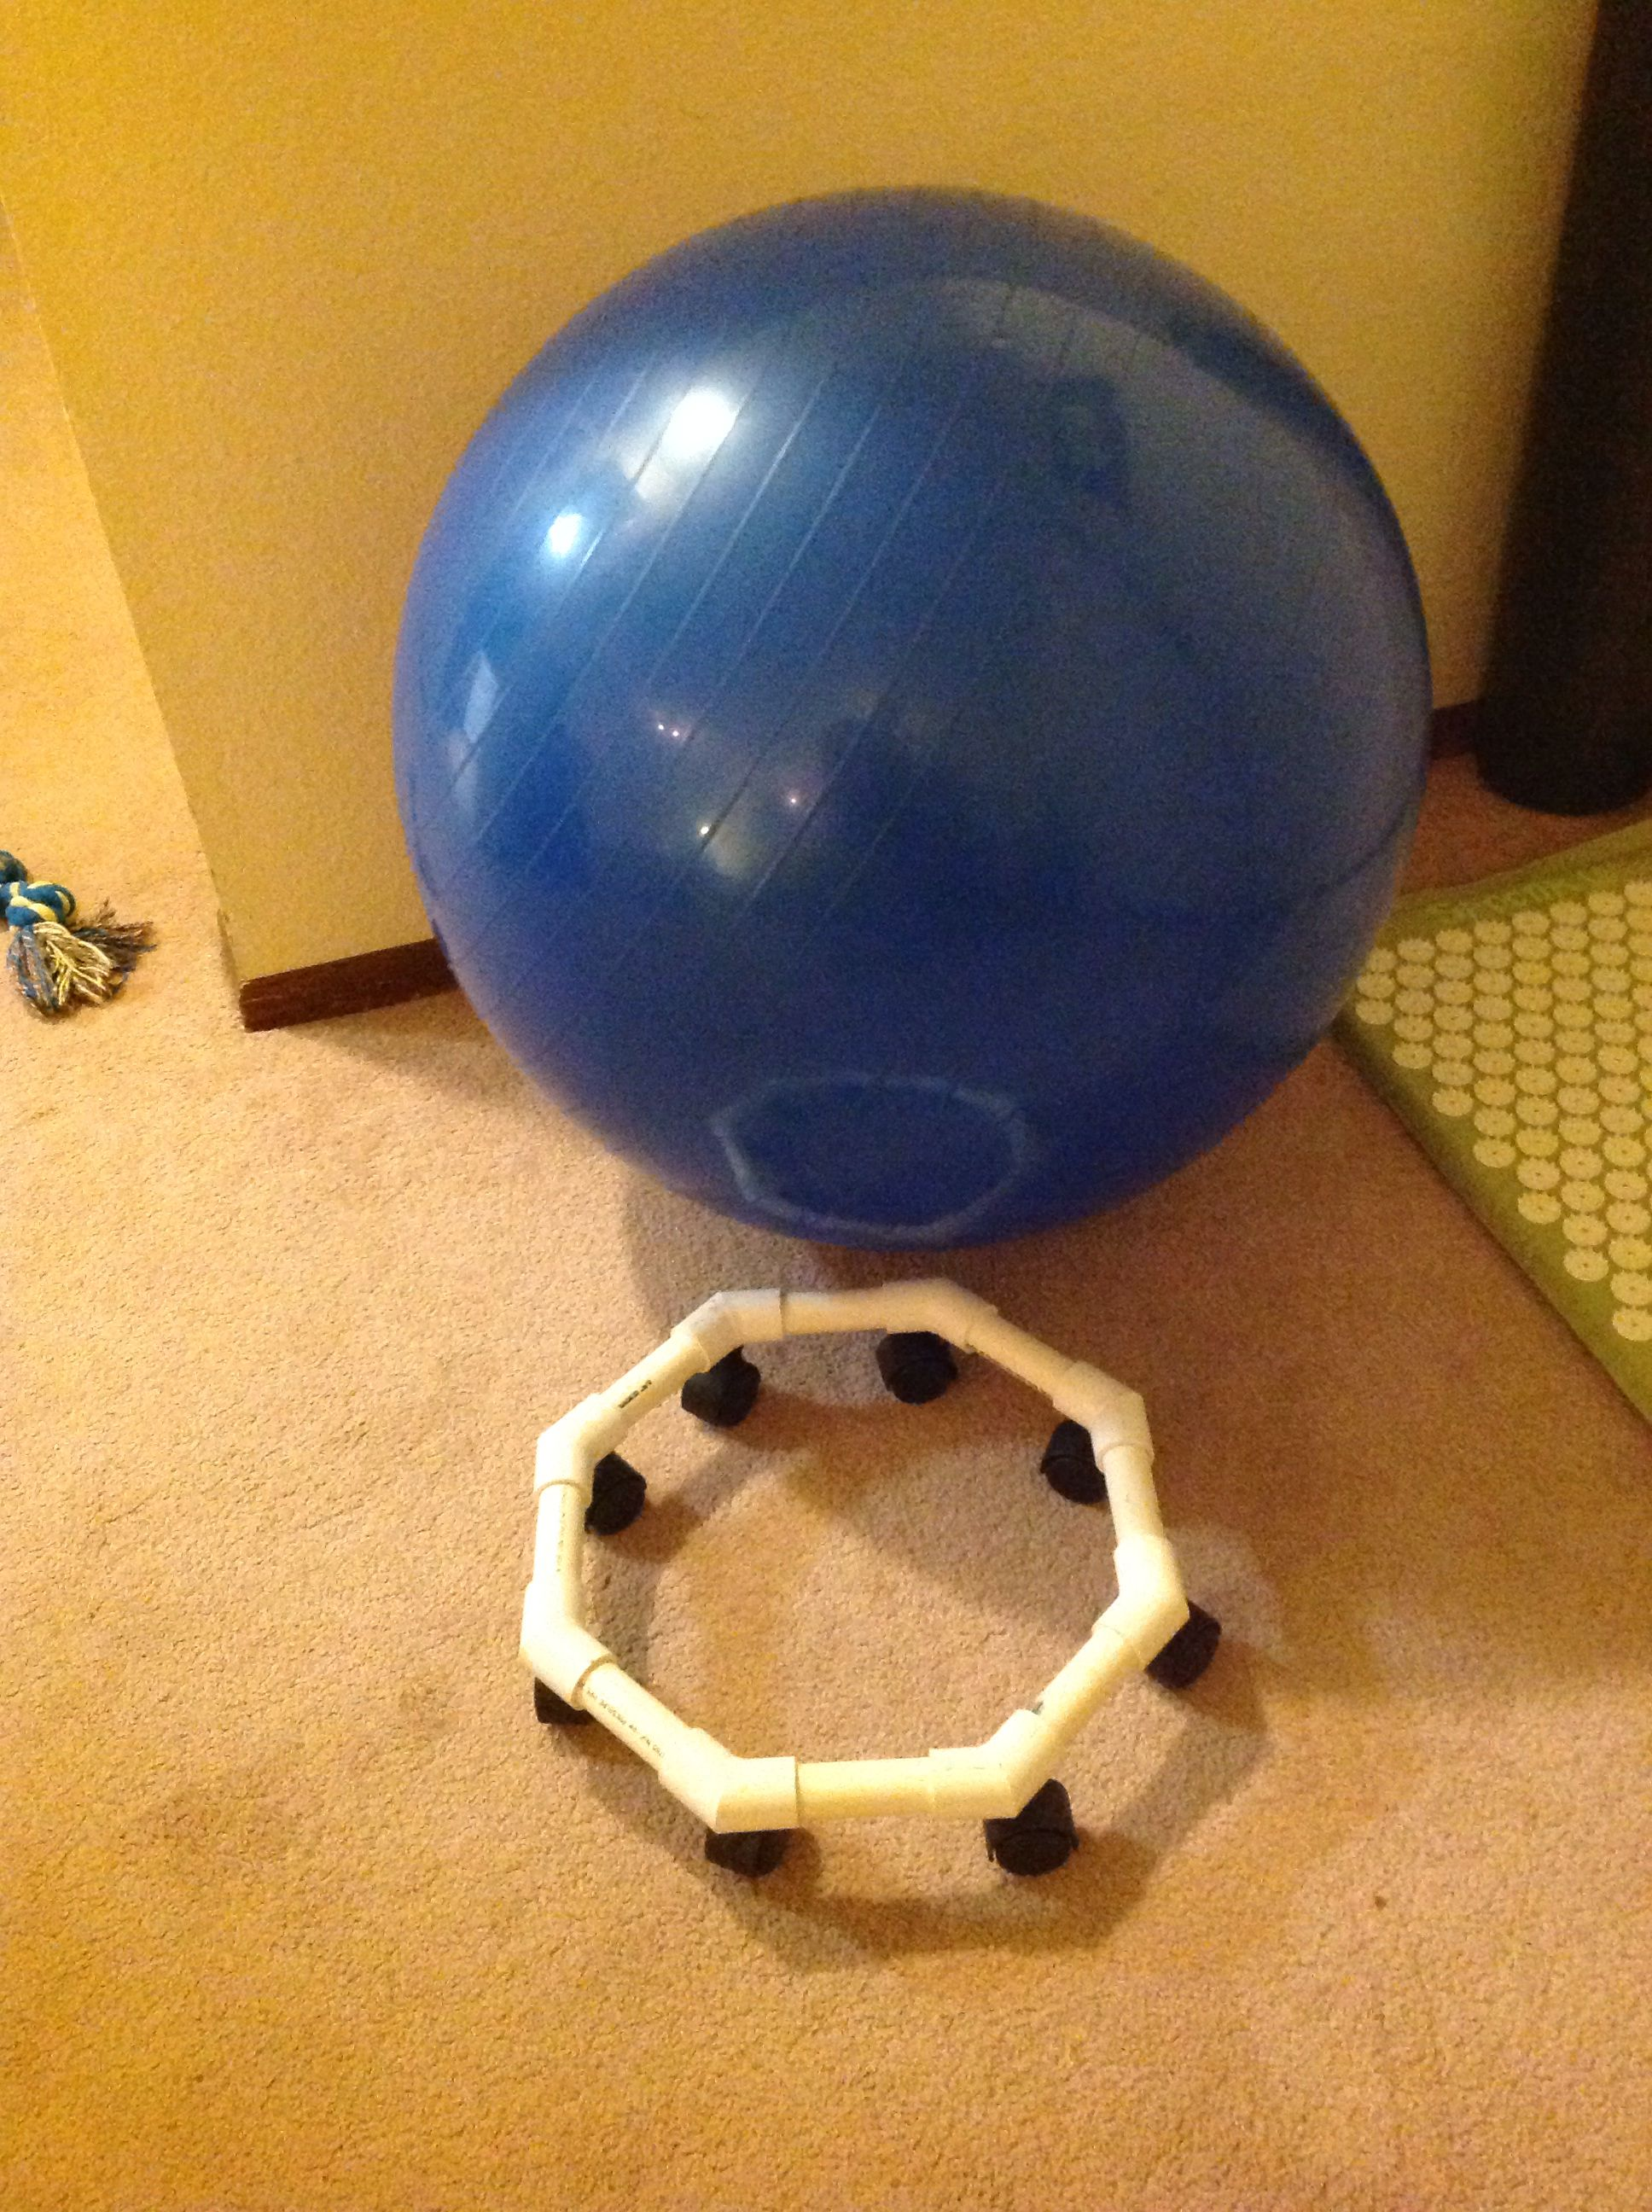 Diy exercise ball chair base - Exercise Ball Base Diy Gifts Projectsball Chairpvc